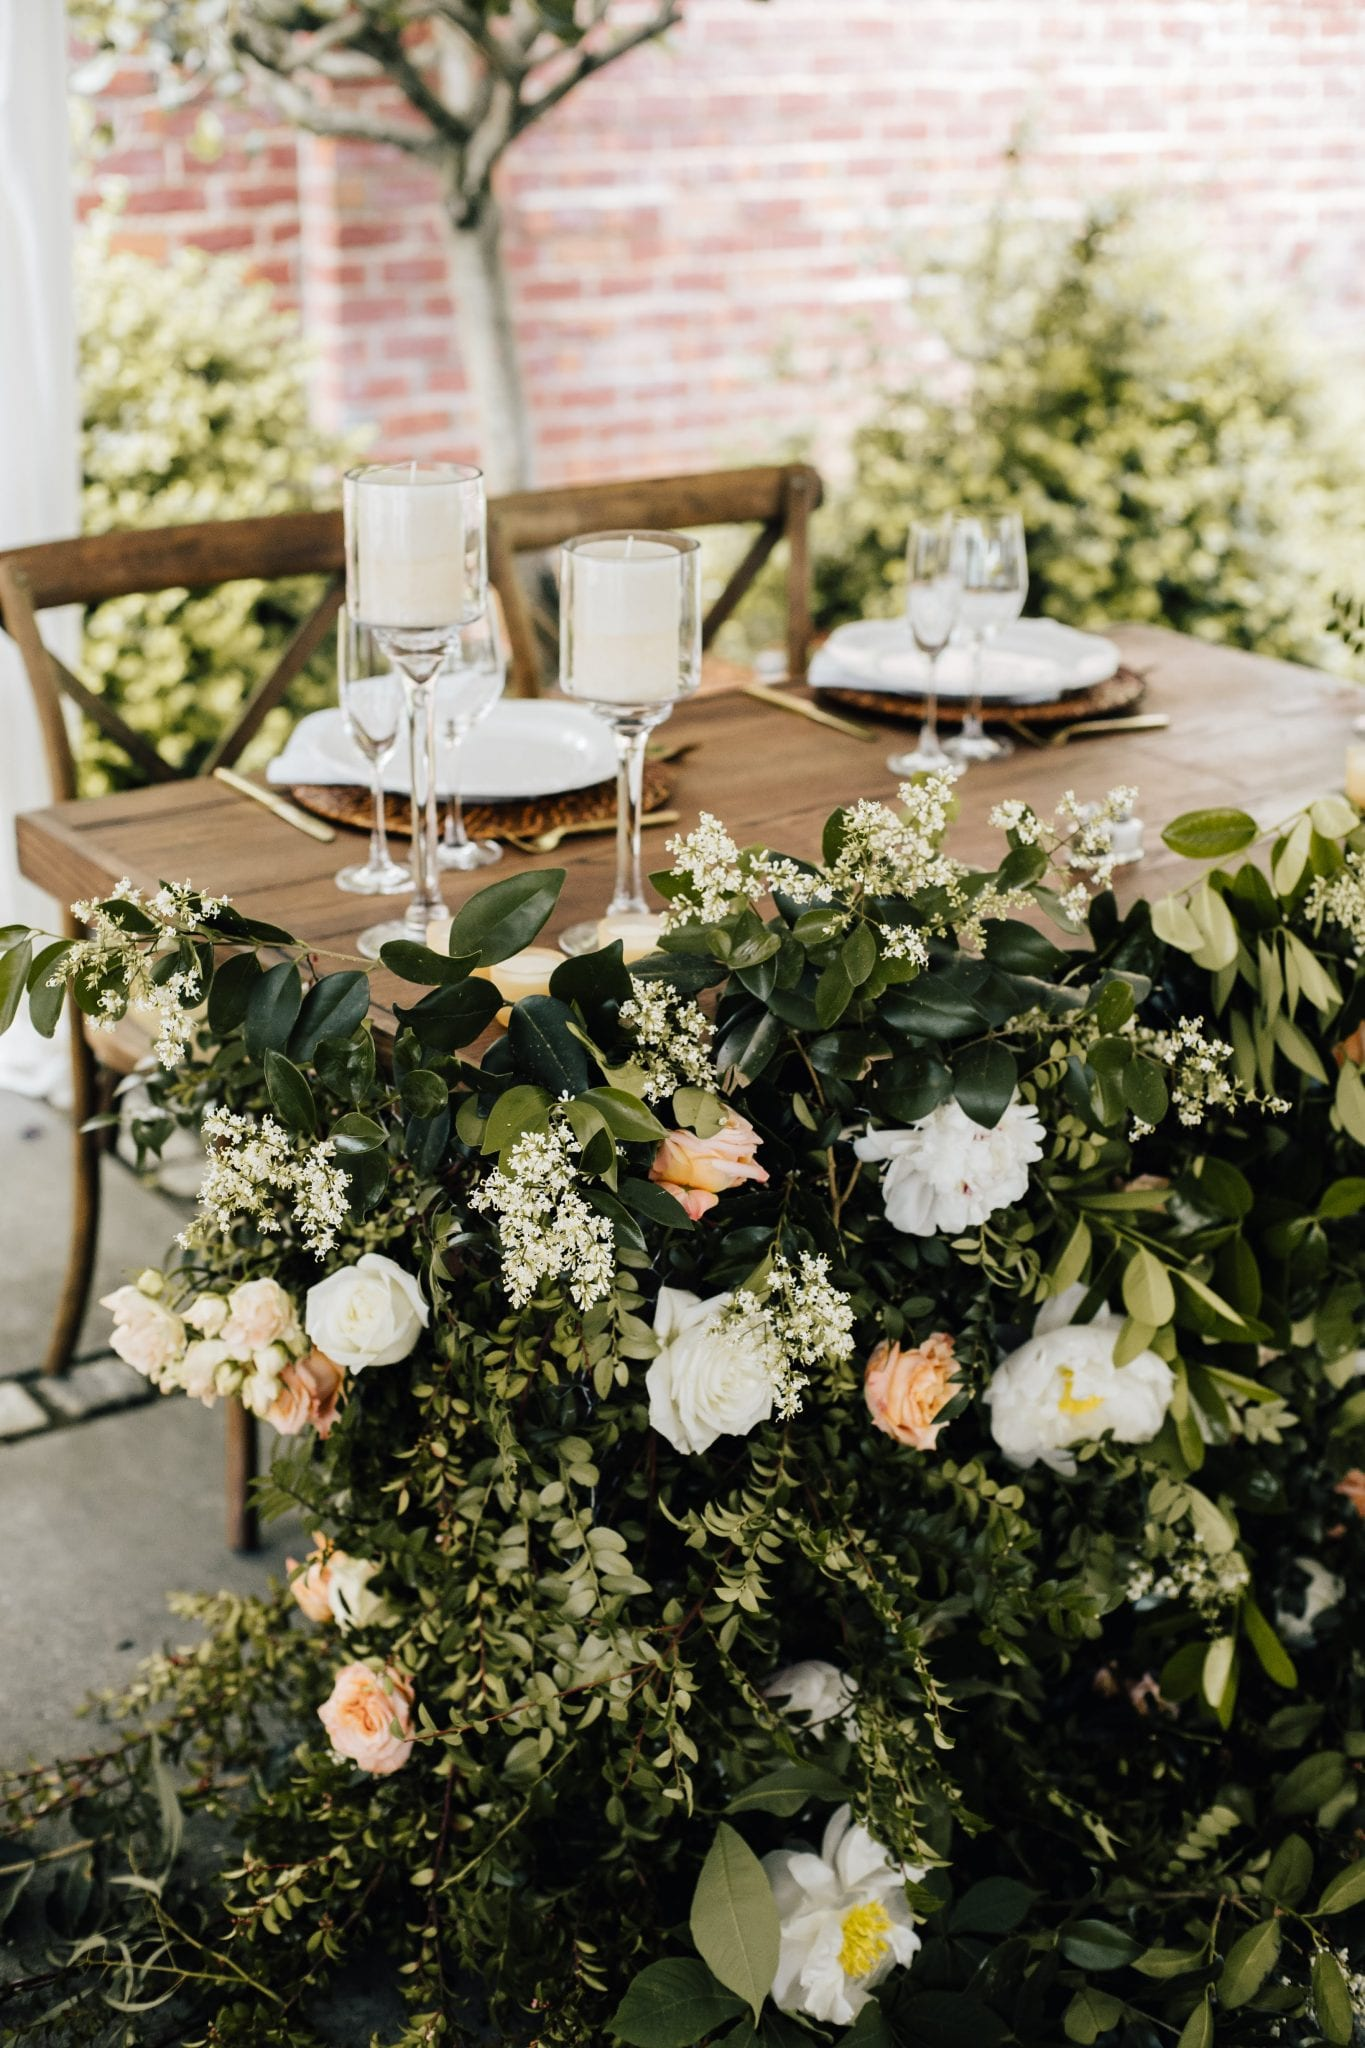 Garden wedding sweetheart table with rattan chargers and crystal candlesticks and overflowing floral arrangement